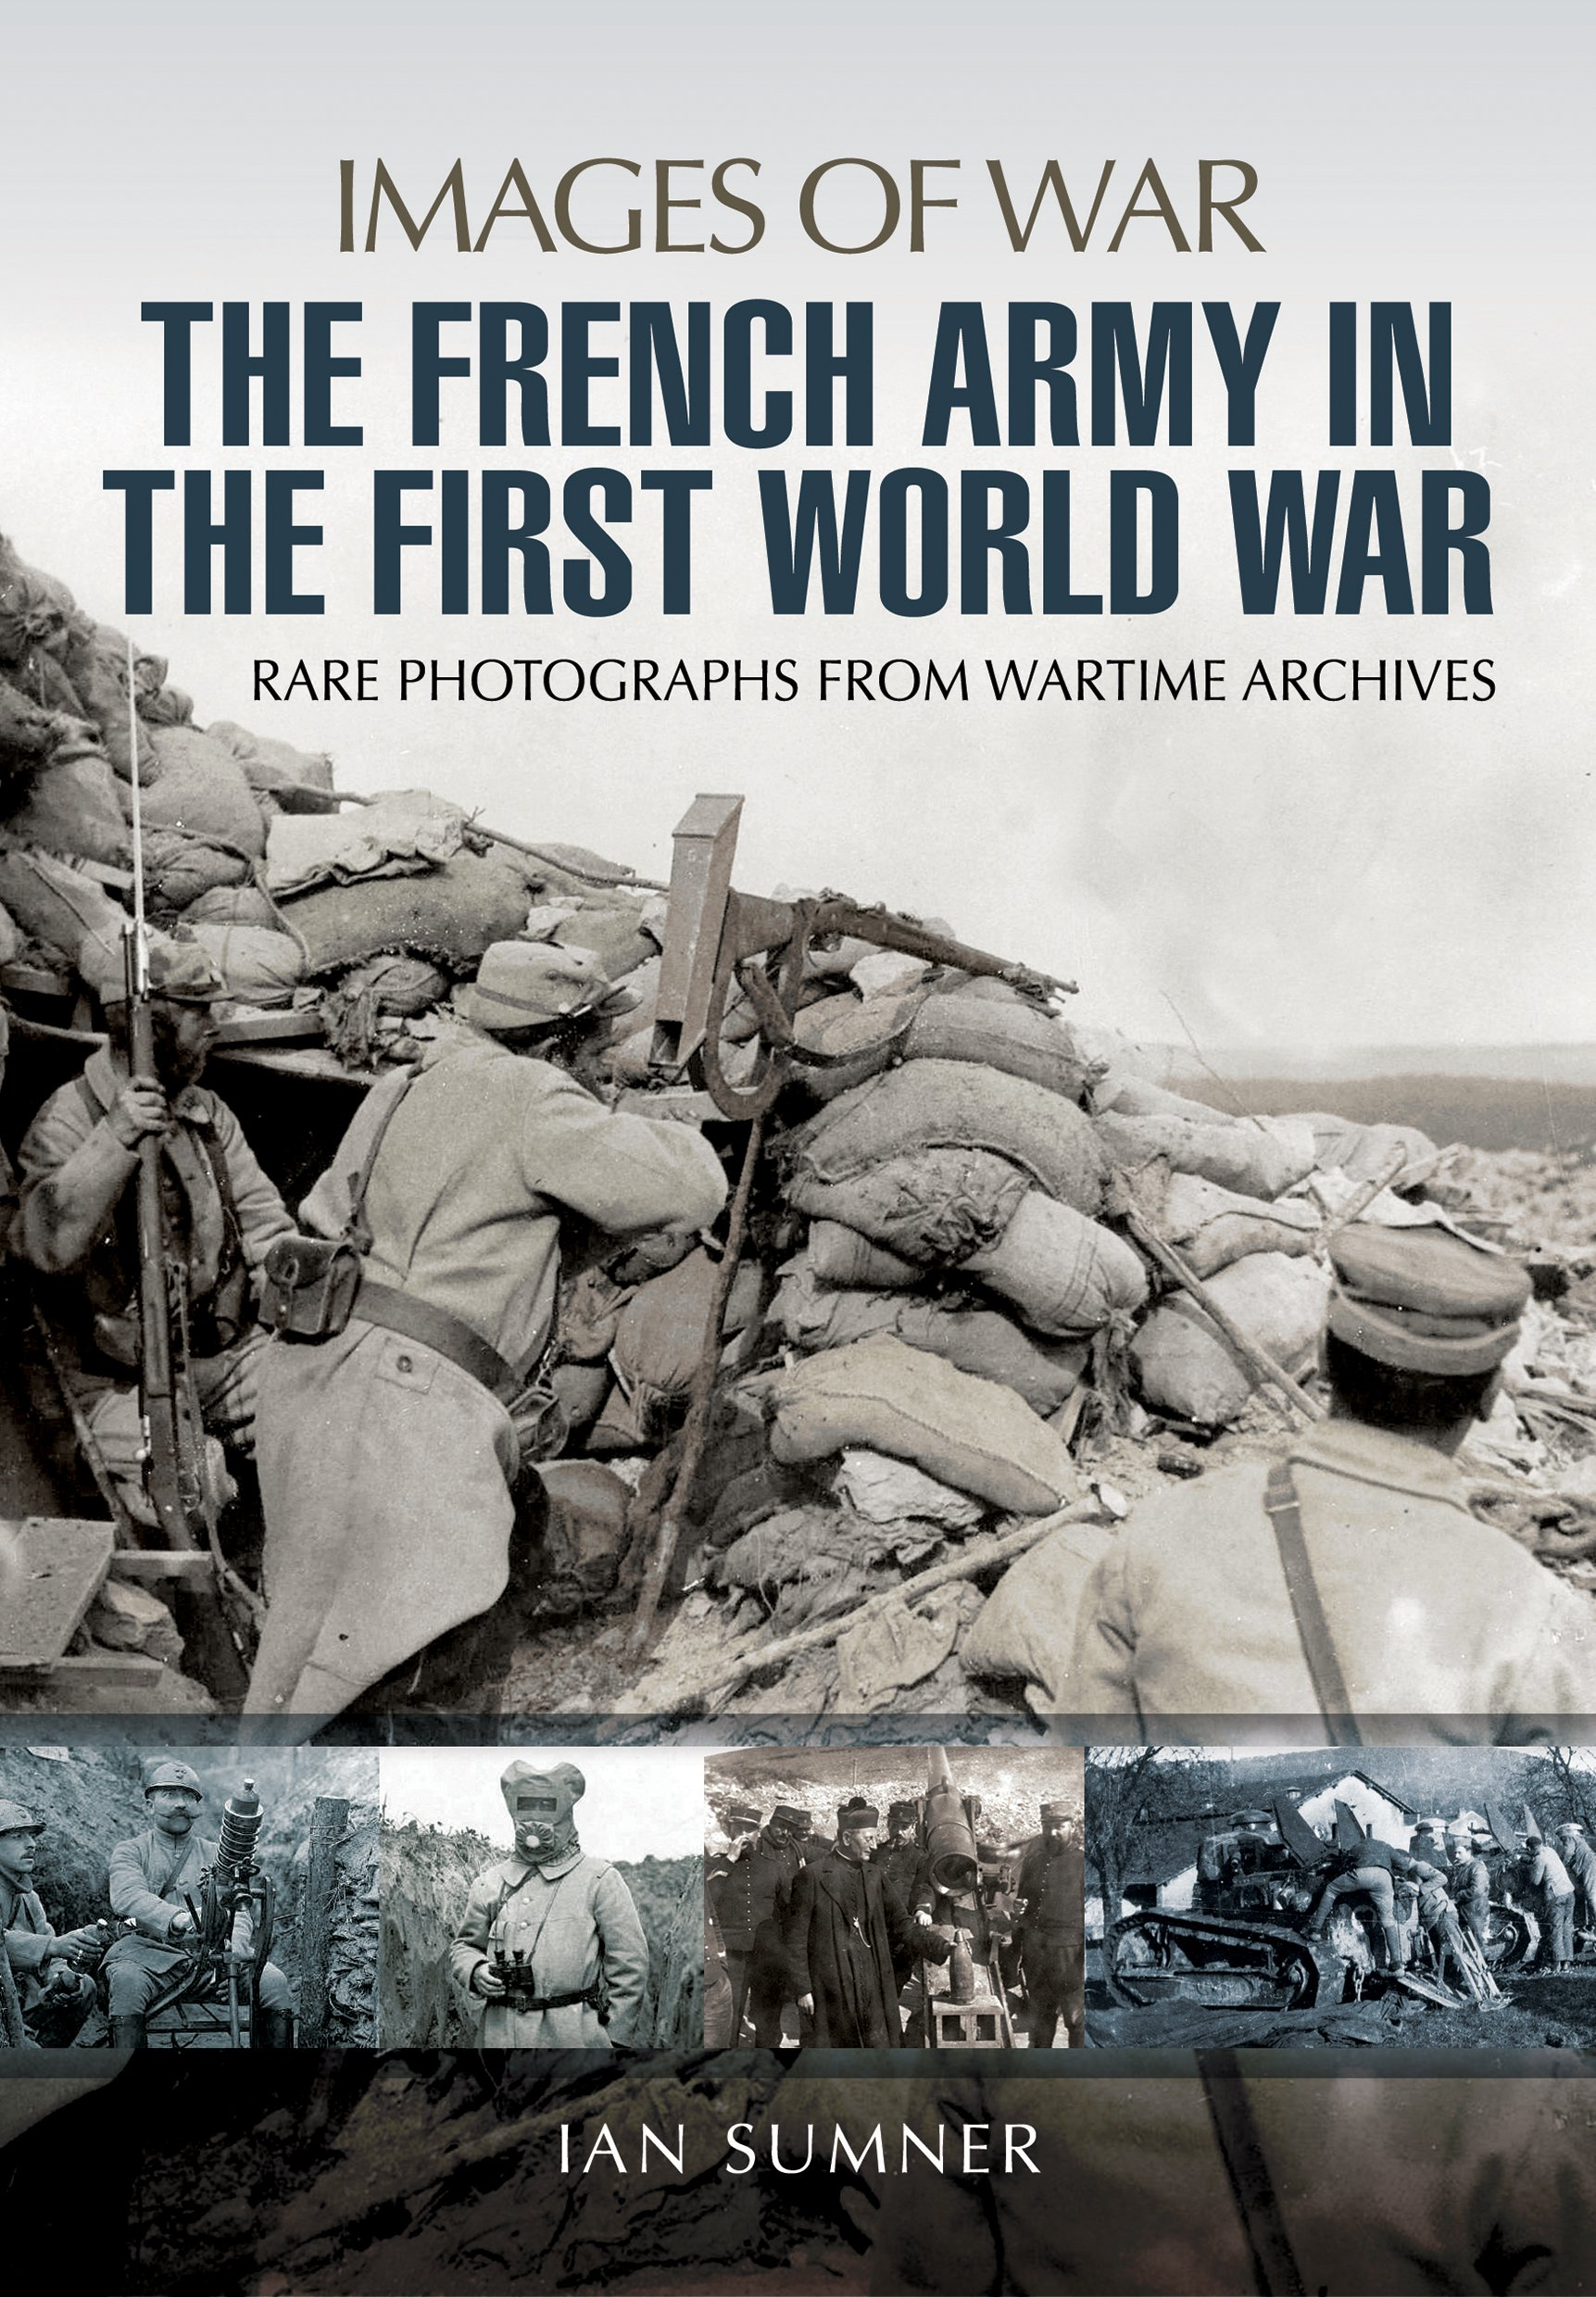 Download The French Army in the First World War: Rare Photographs from wartime Archives (Images Of War) PDF